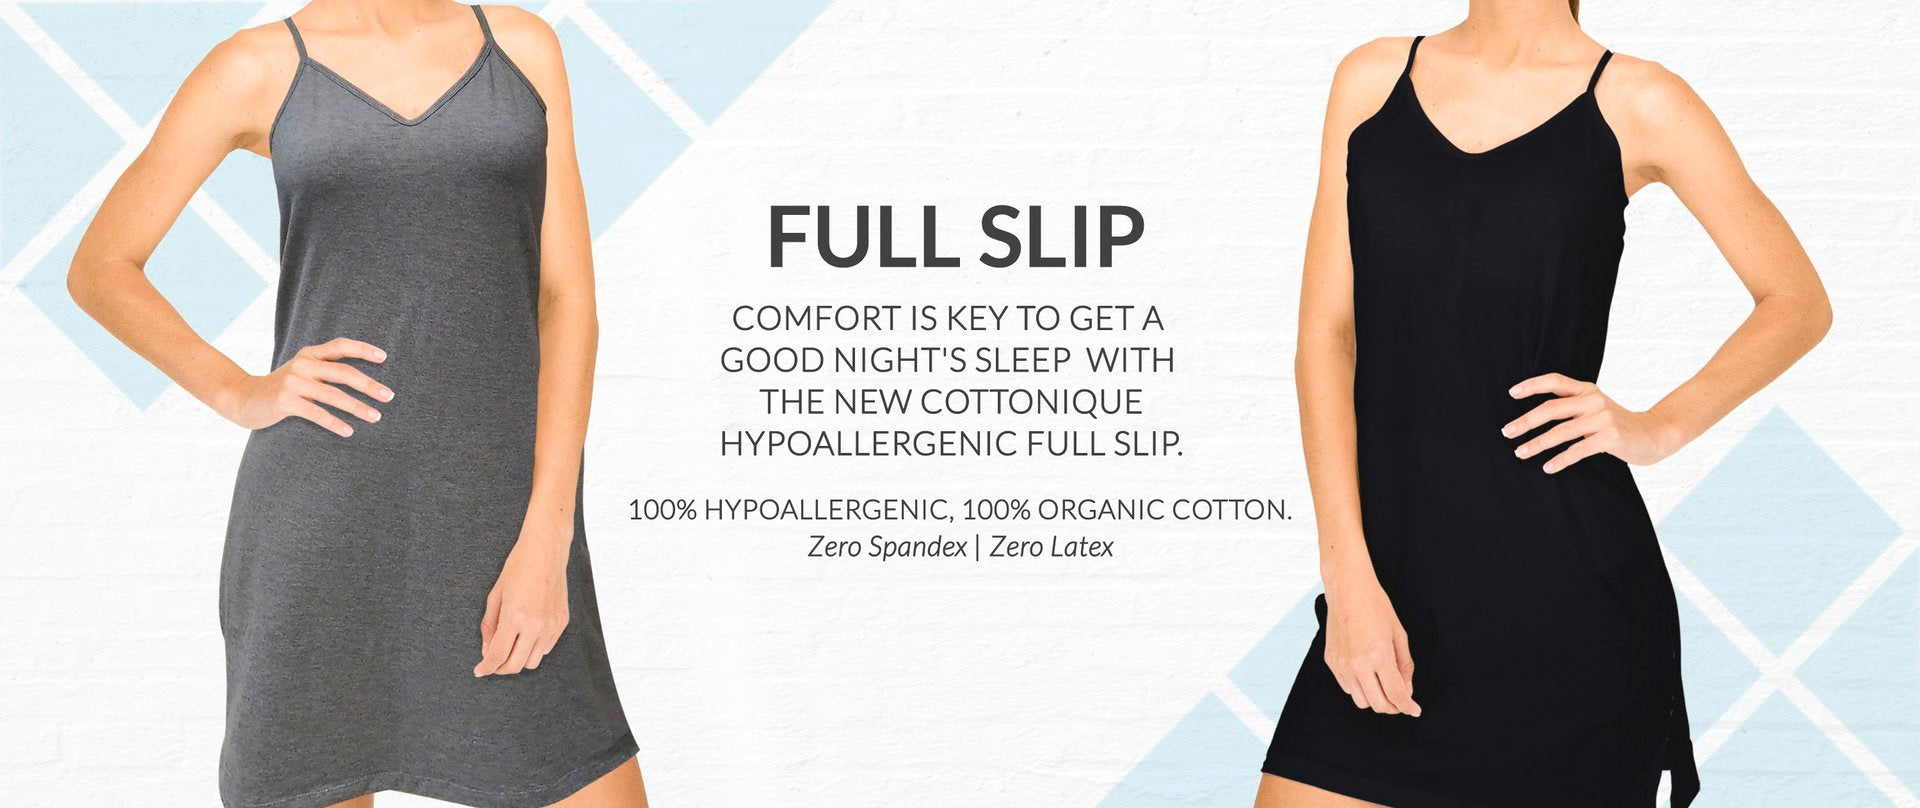 Eco Friendly Clothing For Humans With Allergies And